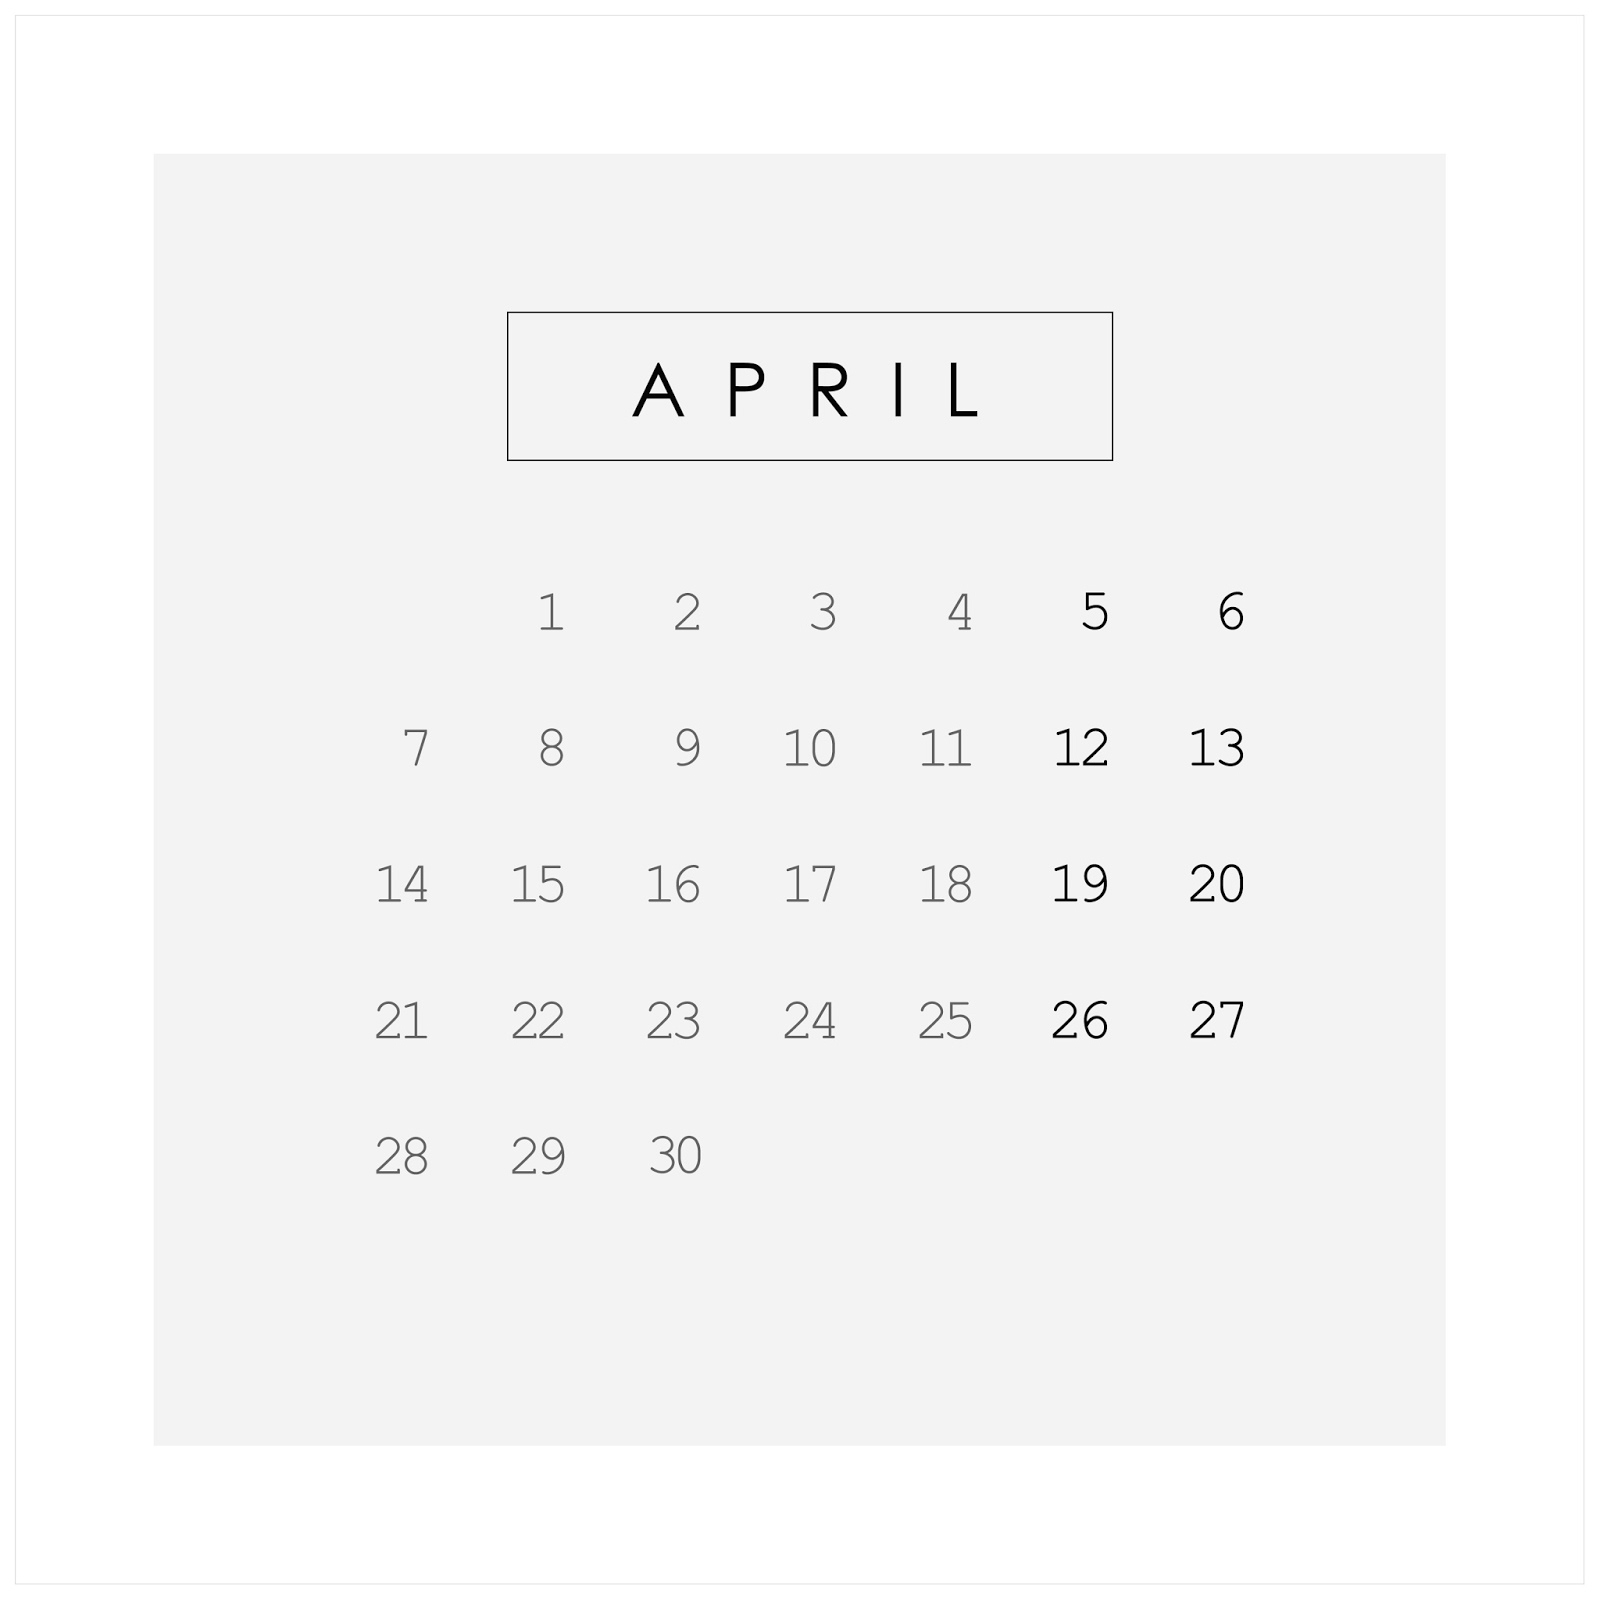 March April May 2014 Calendar 2014 calendar